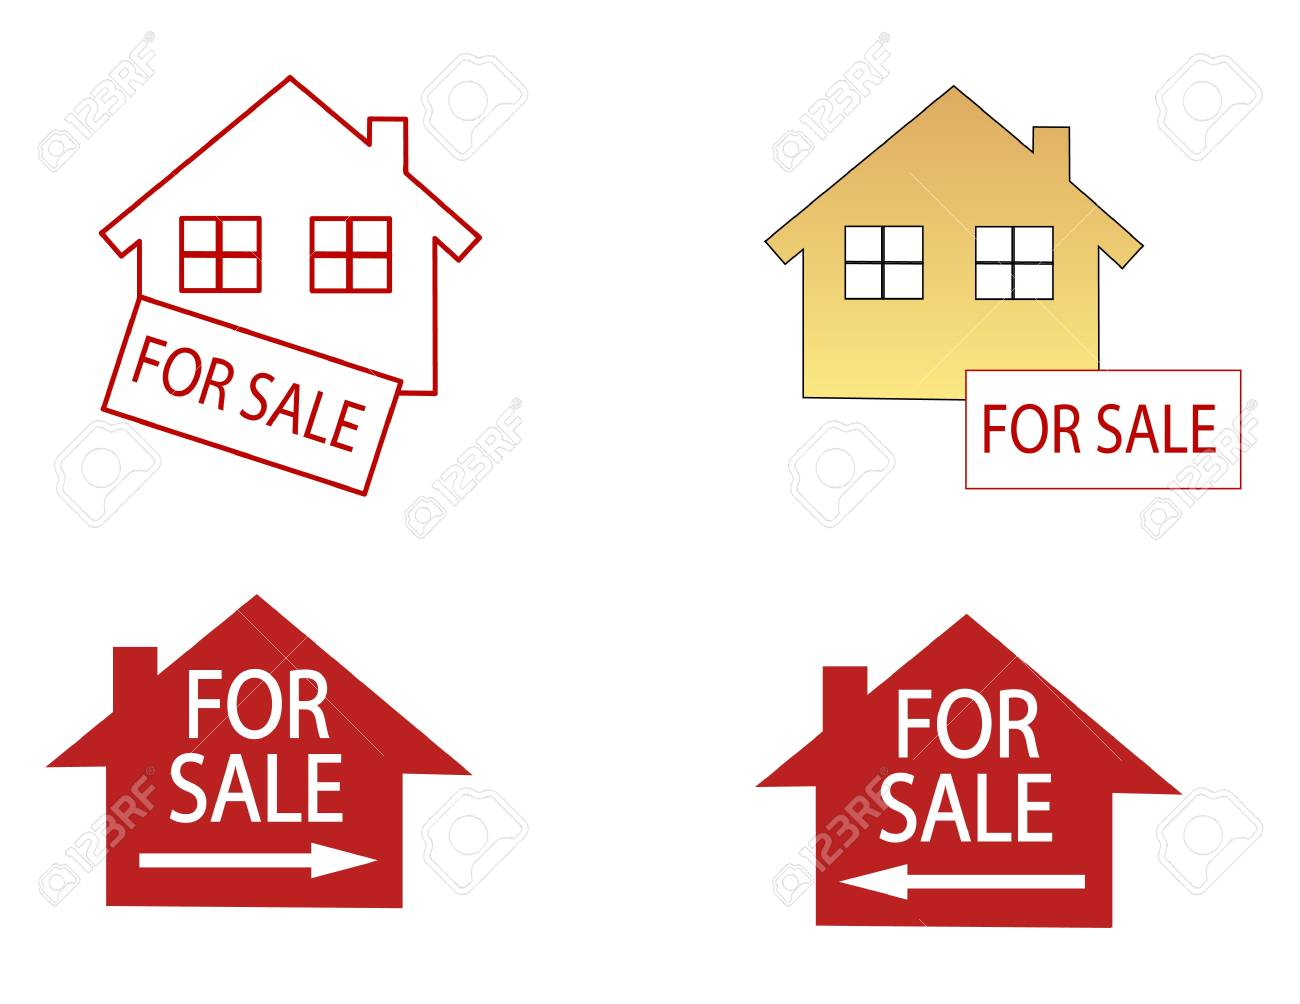 house for sale Stock Vector - 15129938